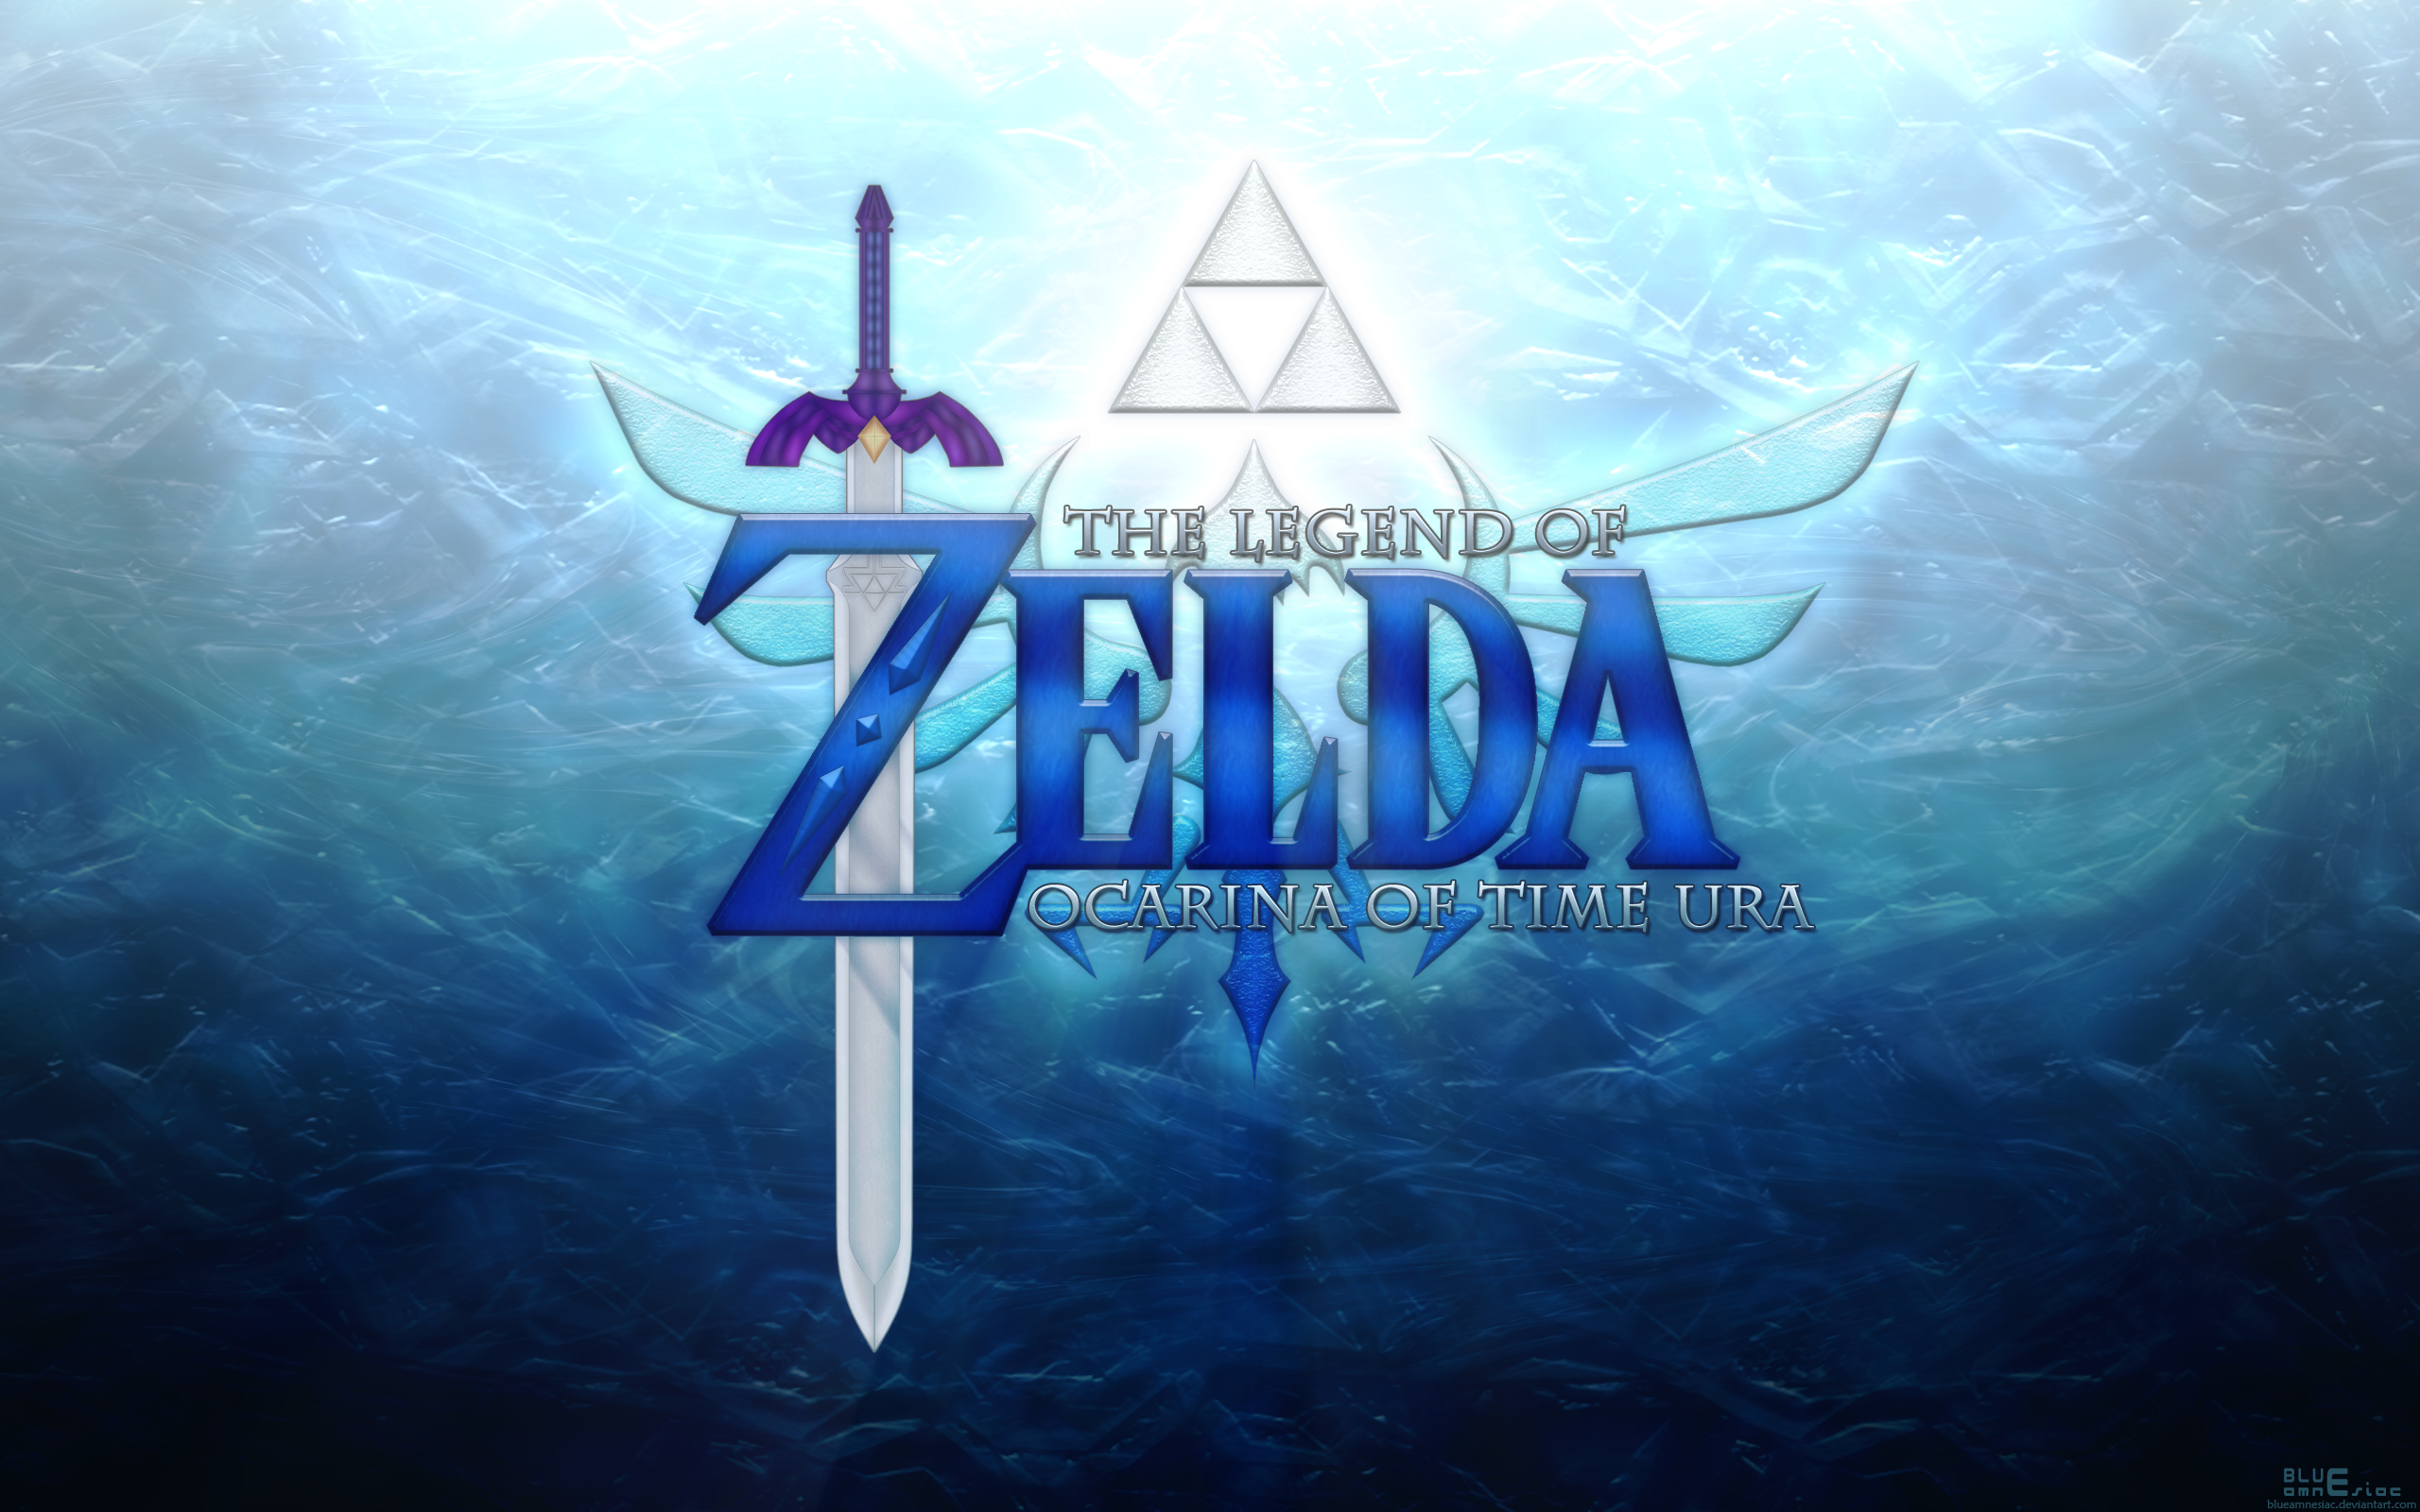 Ocarina Of Time Ura Wallpaper By BLUEamnesiac